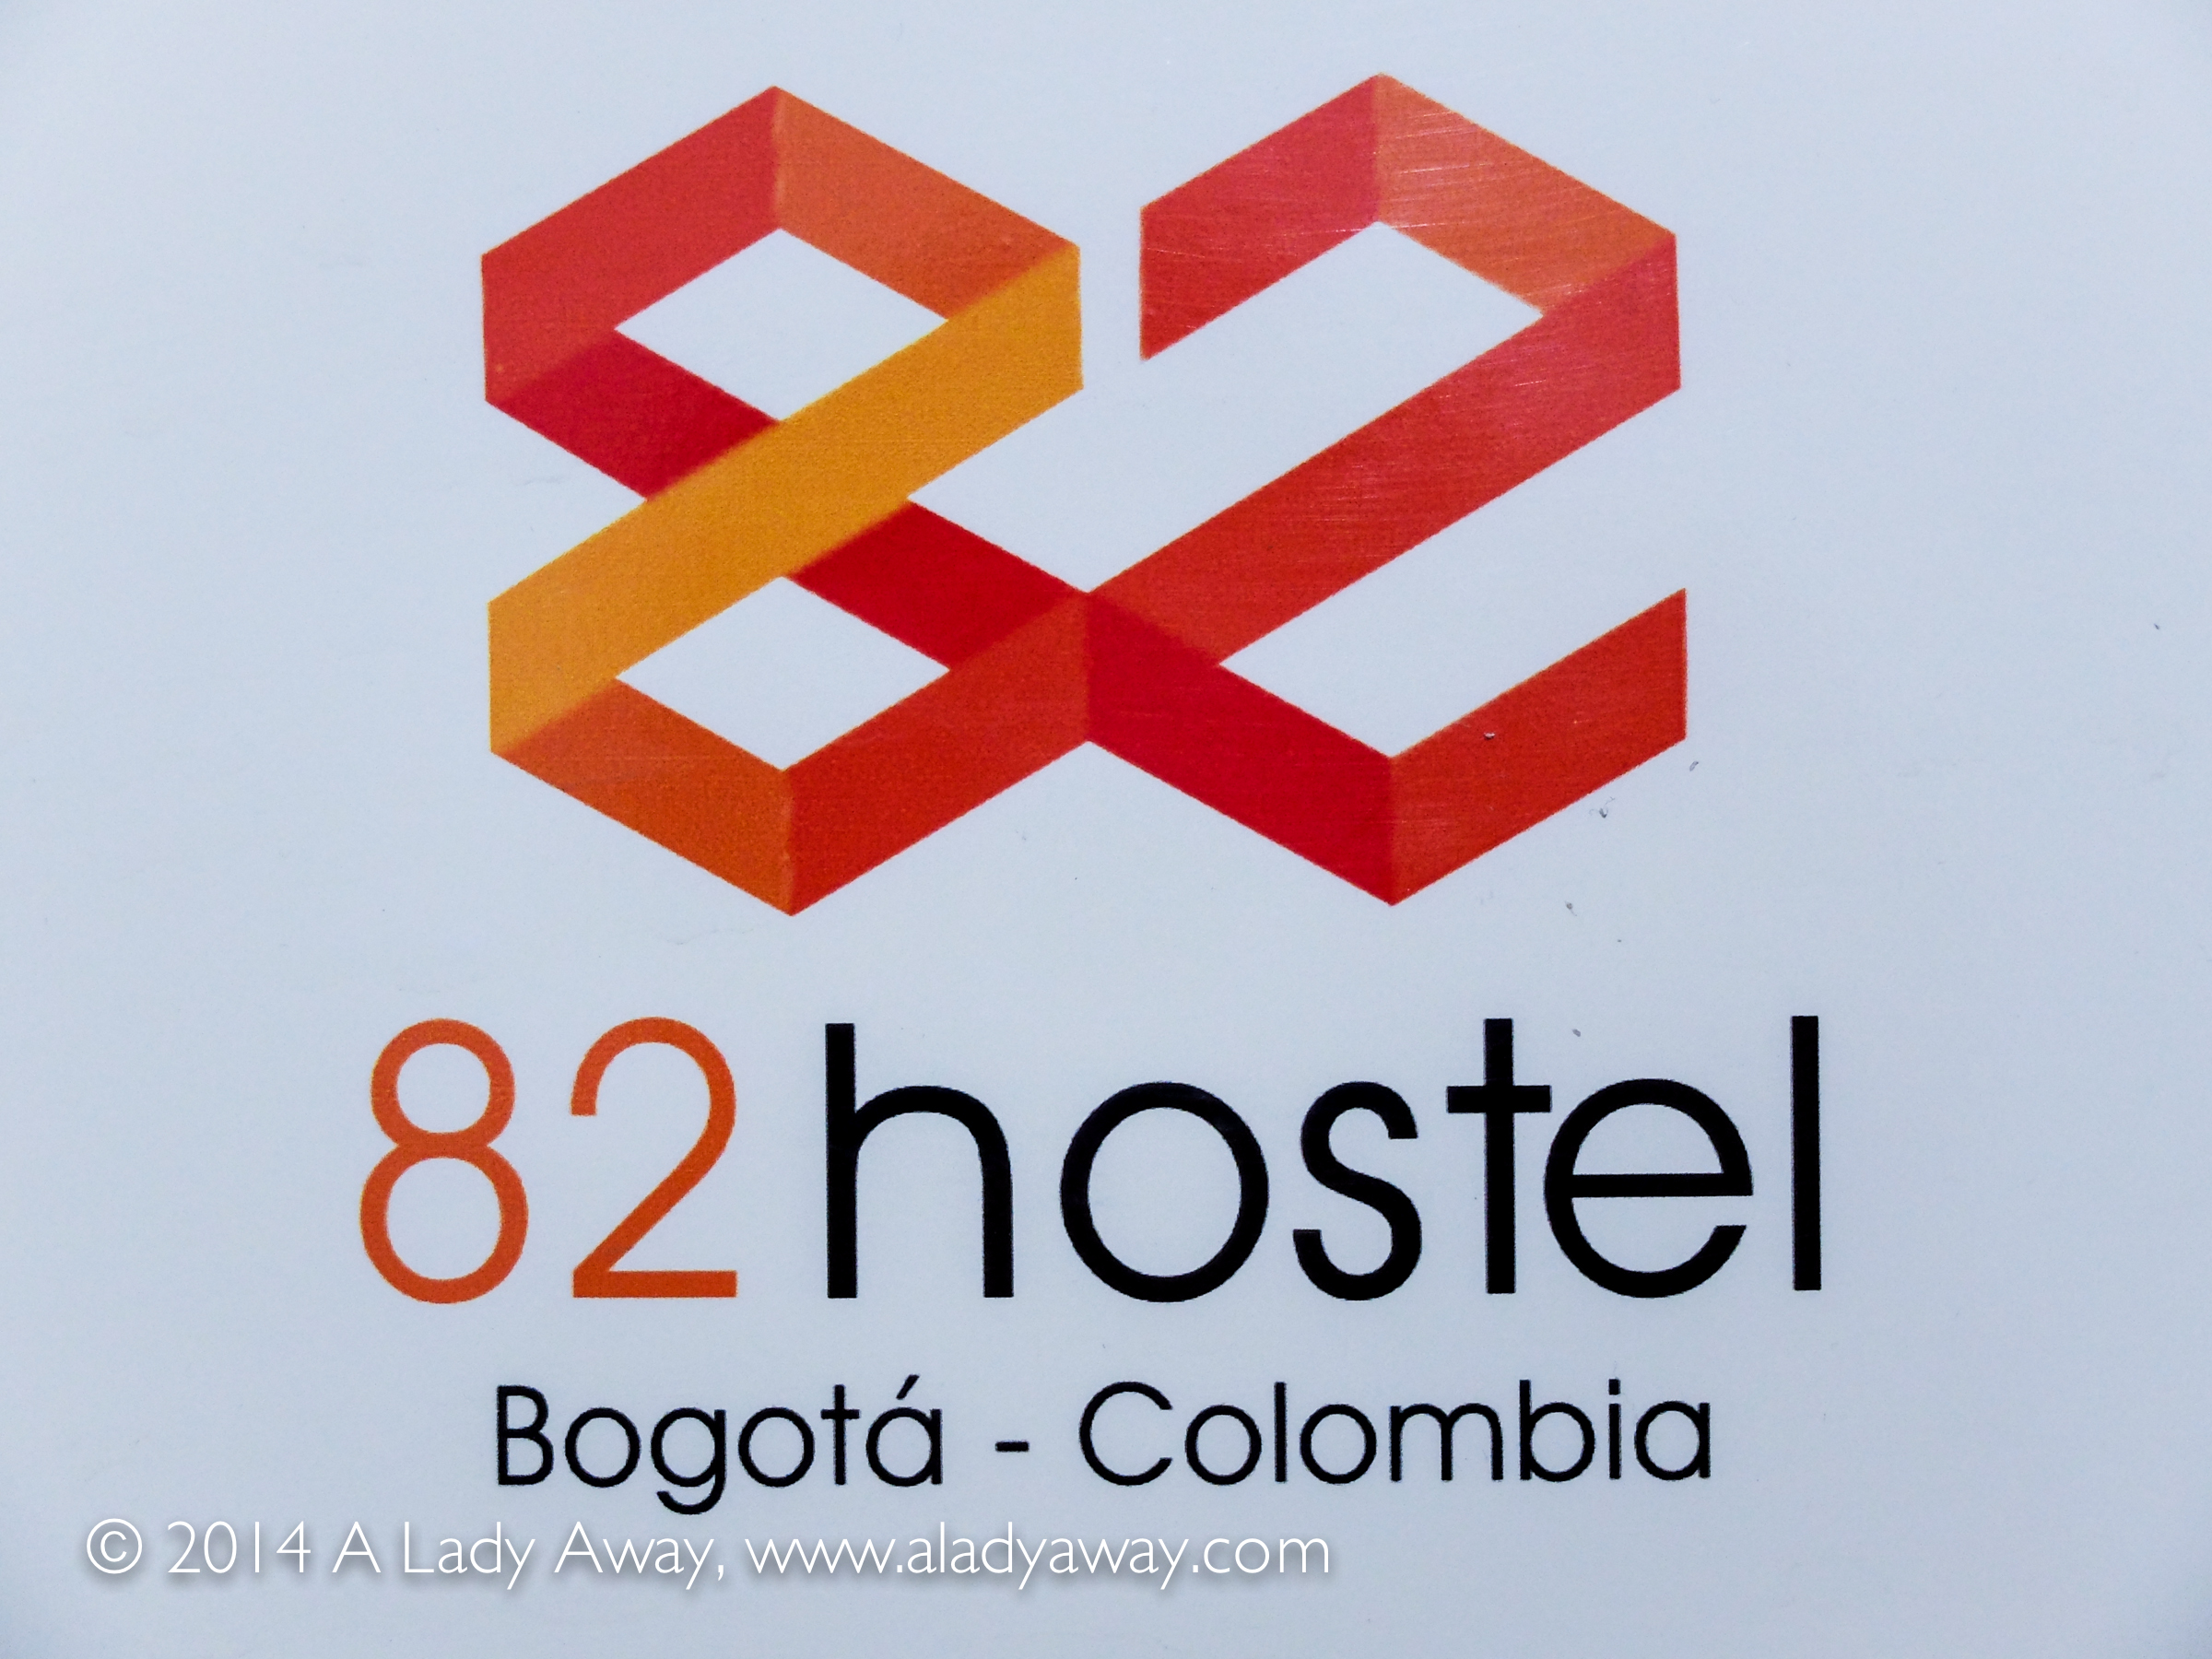 82 Hostel: A unique place to stay in Bogotá